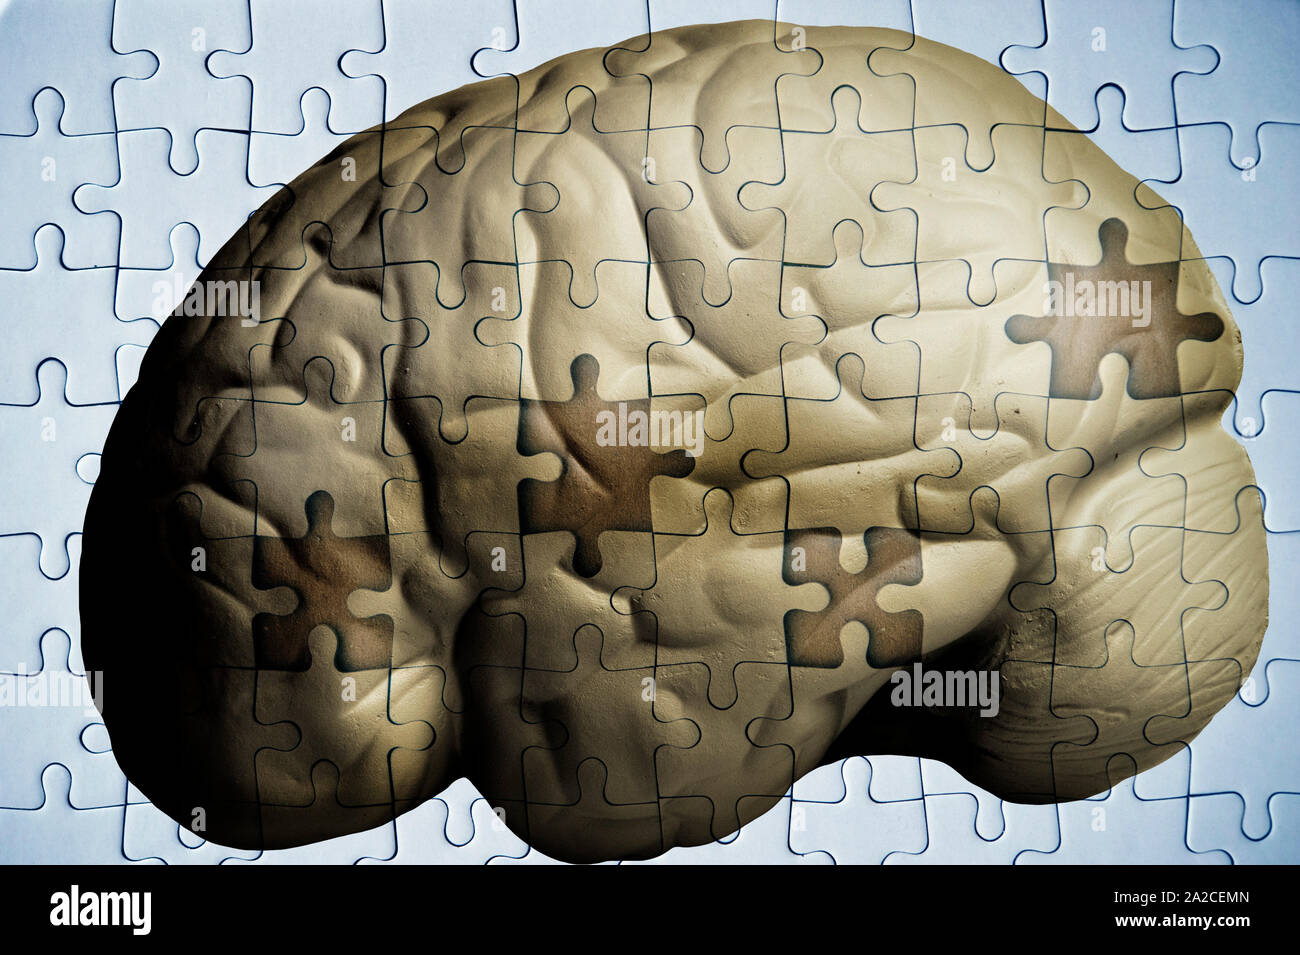 human brain and jigsaw puzzle with missing pieces - Alzheimer Stock Photo